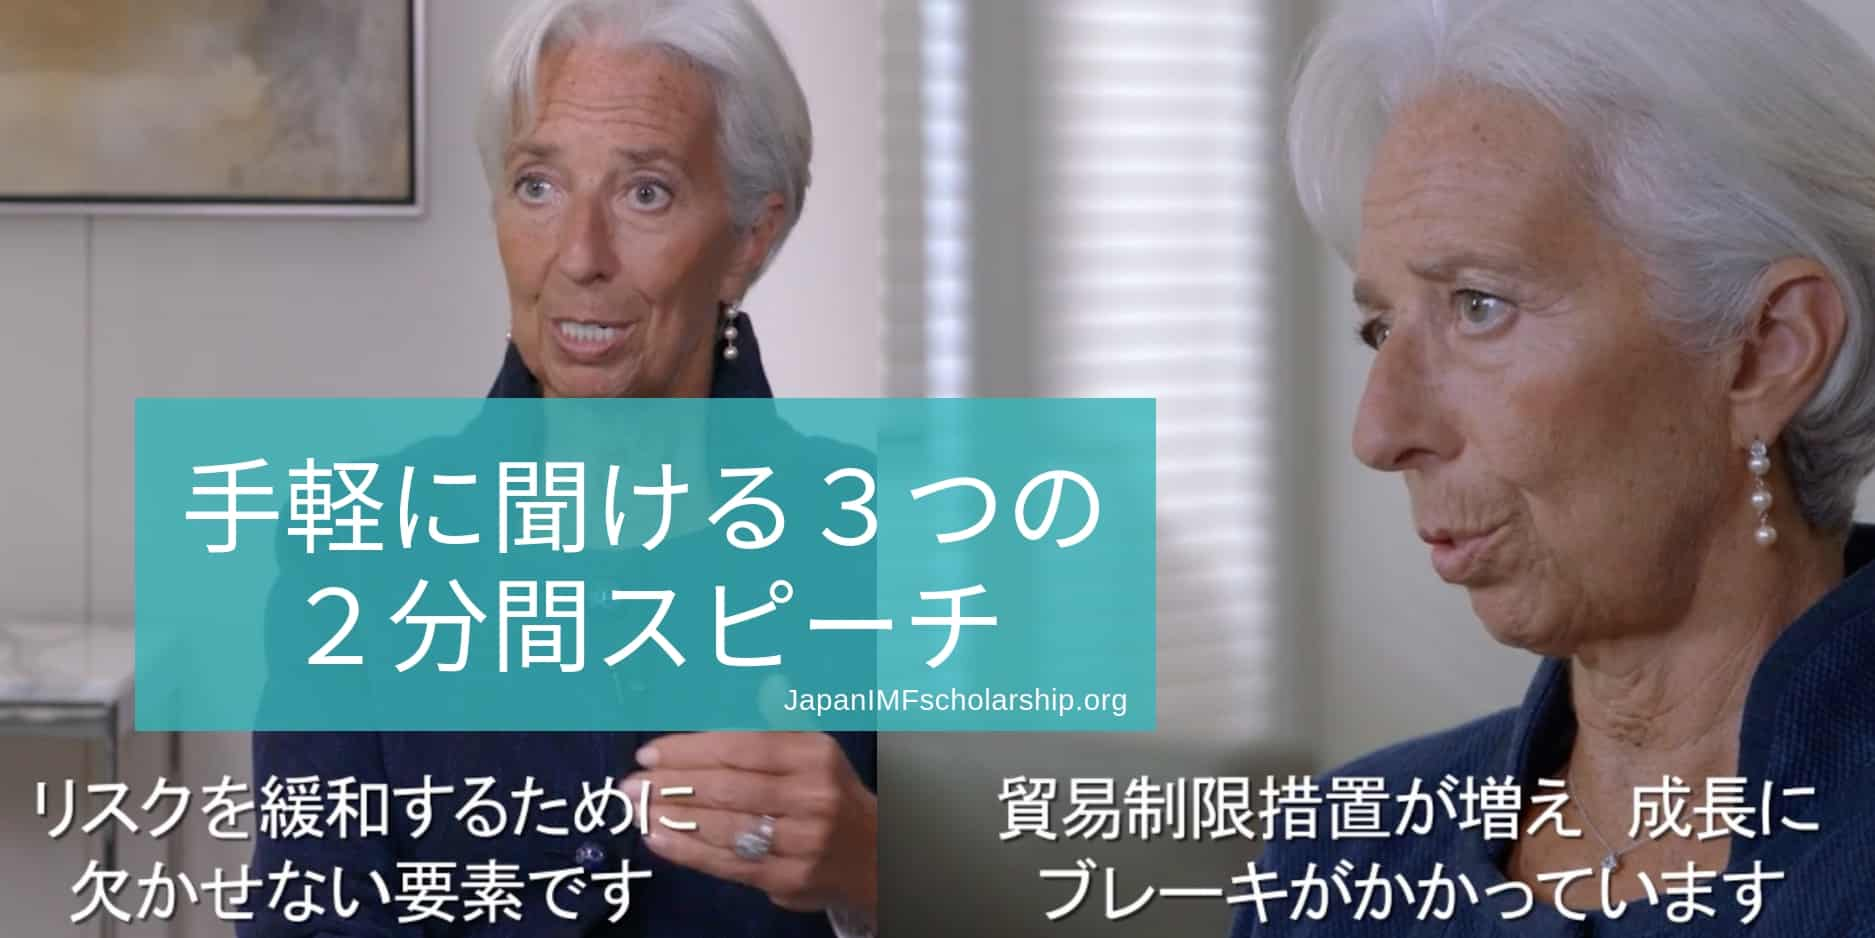 jisp imf 3 videos of christine lagarde